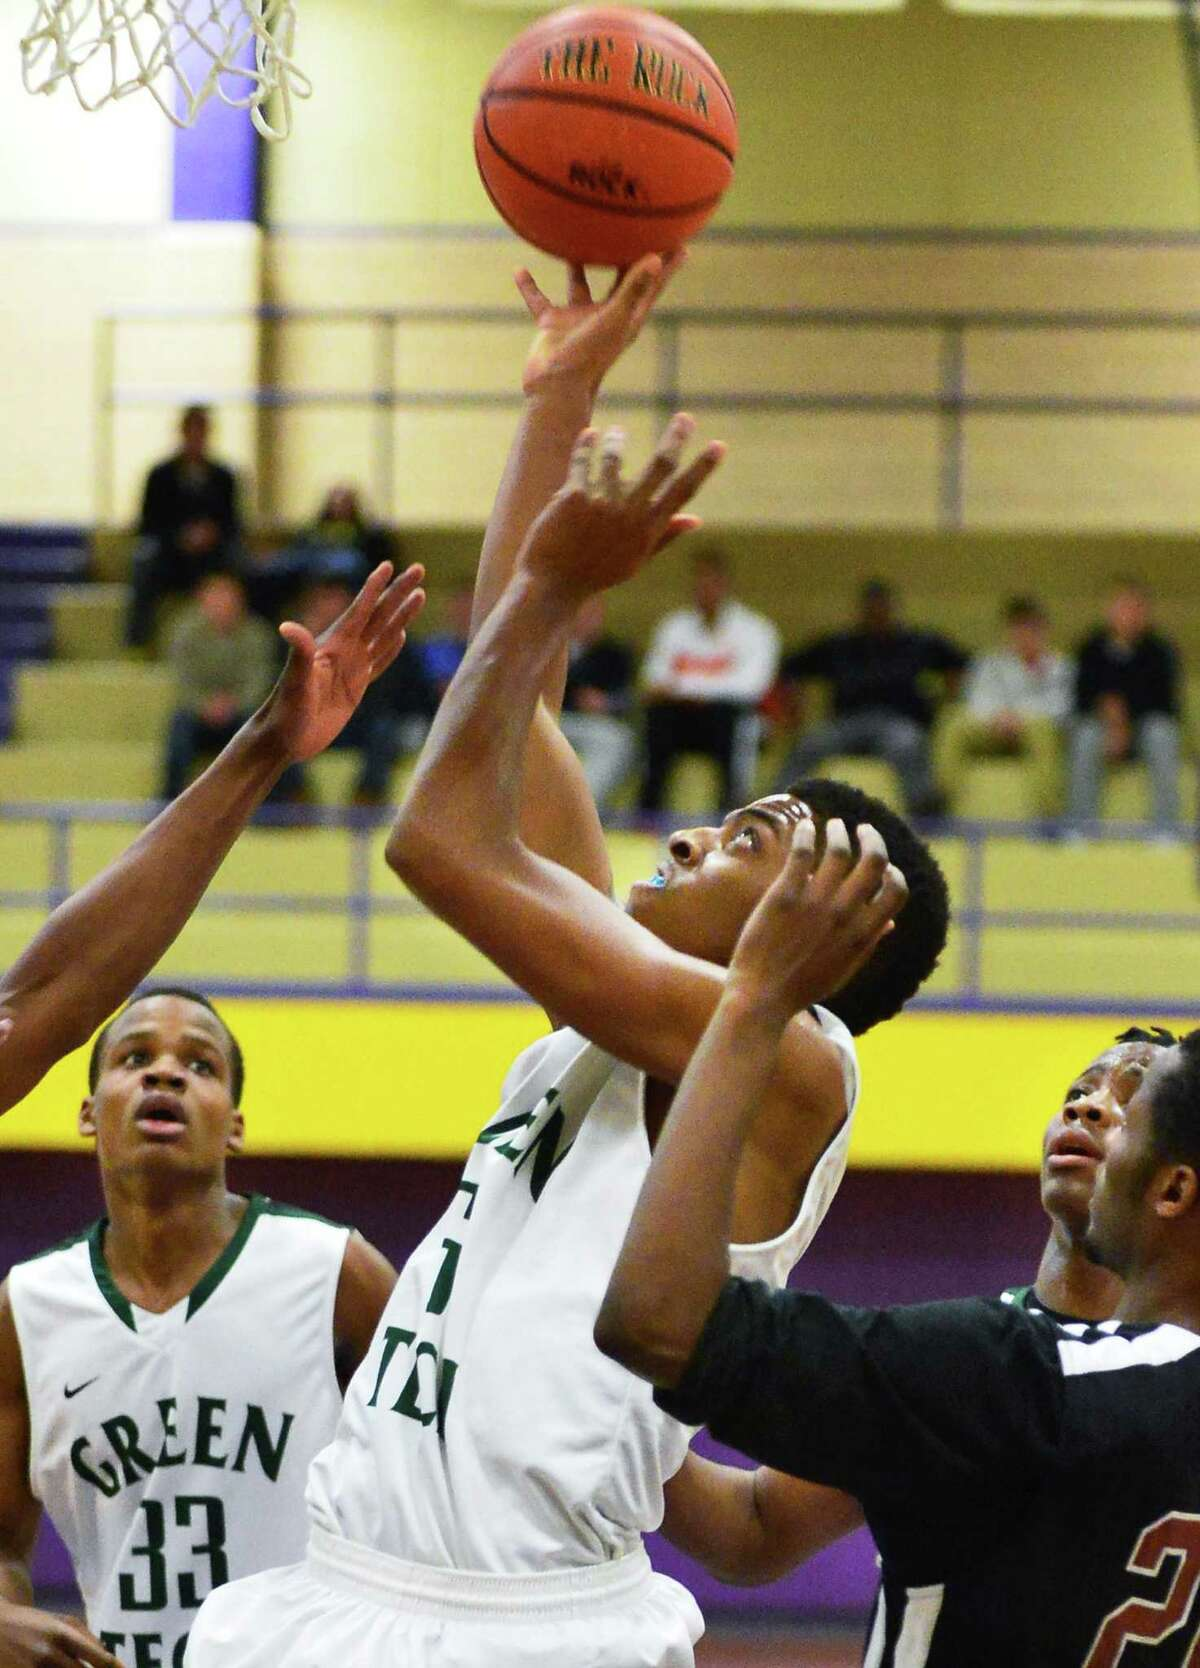 Green Tech's #3 Isiah Dobhere shoots during Saturdays game against Kingston at Troy High Dec. 21, 2013, in Troy, NY. (John Carl D'Annibale / Times Union)